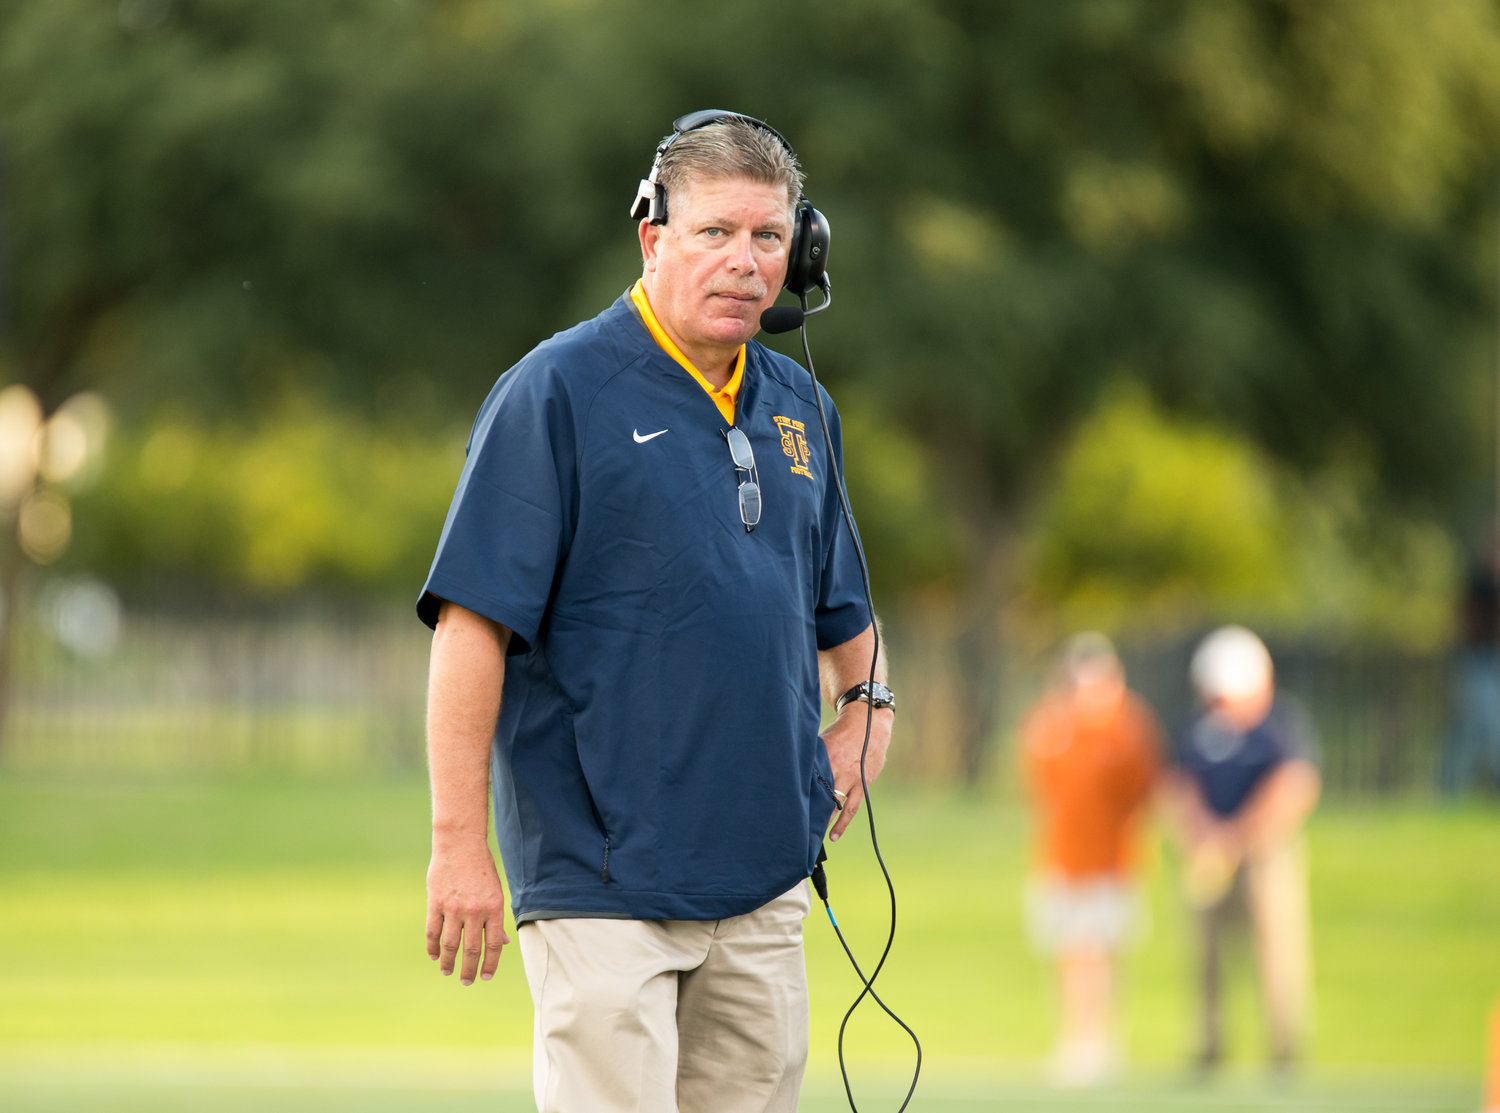 Stony Point head coach Craig Chessher and the Tigers head to The Pfield in Pflugerville on Thursday night to take on Hendrickson. Both teams are 1-1 in District 13-6A play this season.